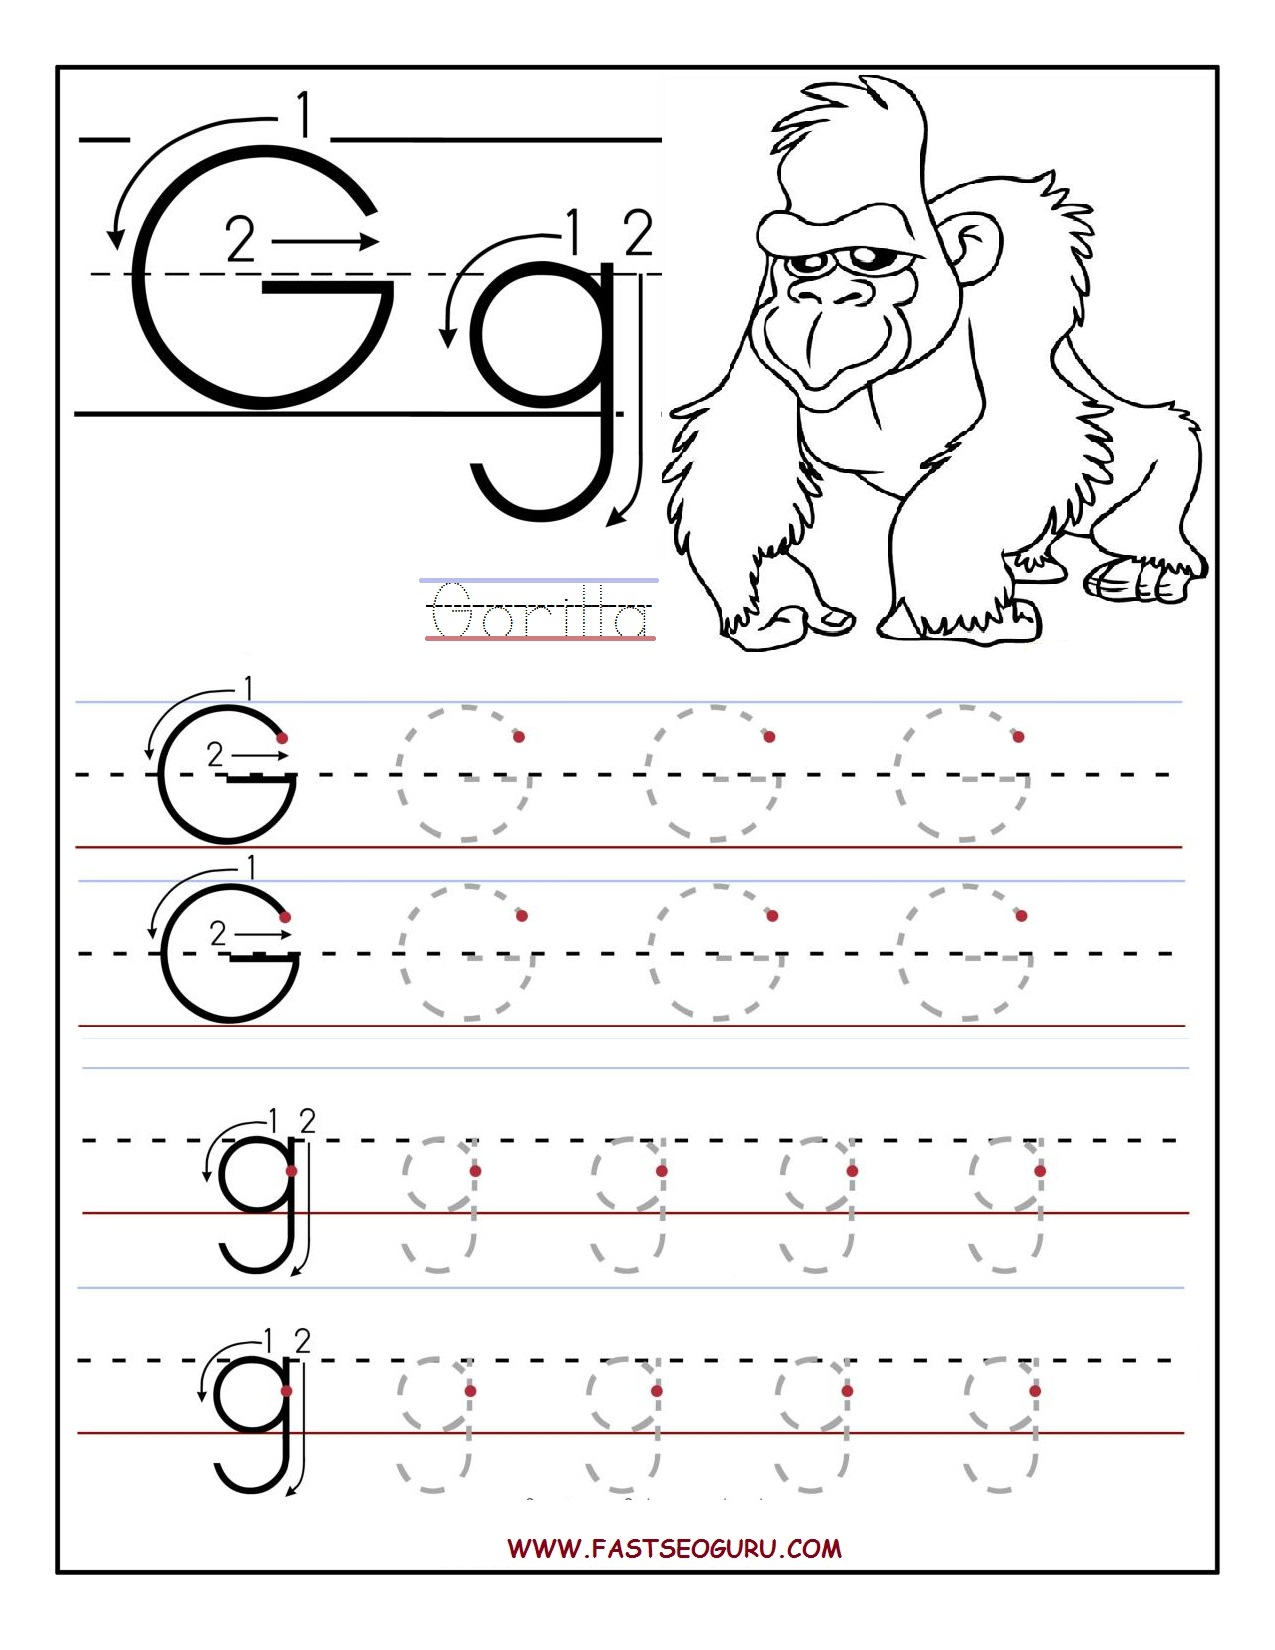 Abc Traceable Printable Worksheets